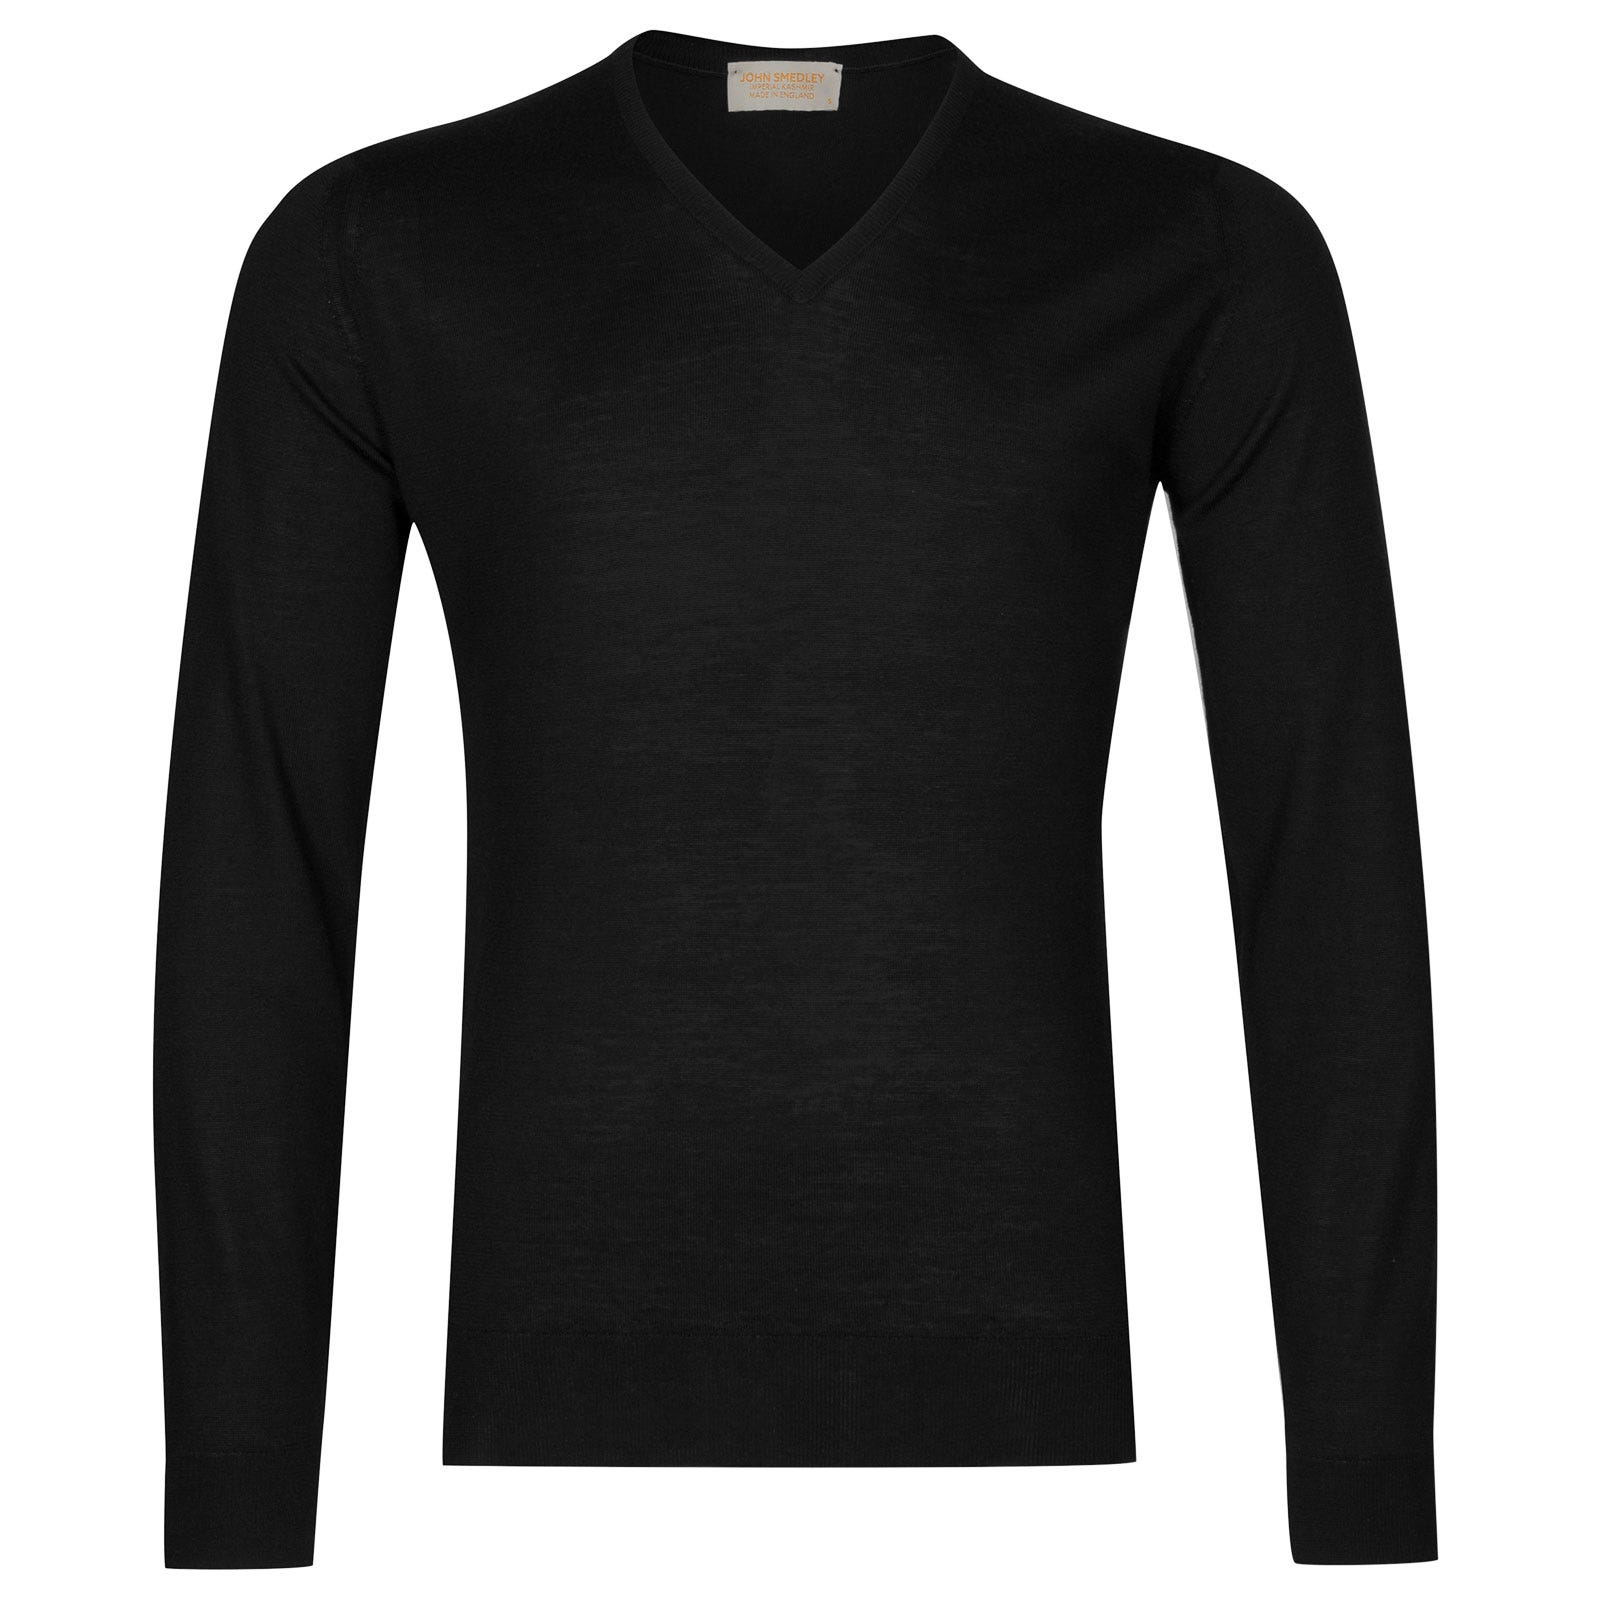 John Smedley newark Merino Wool and Cashmere Pullover in Black-S